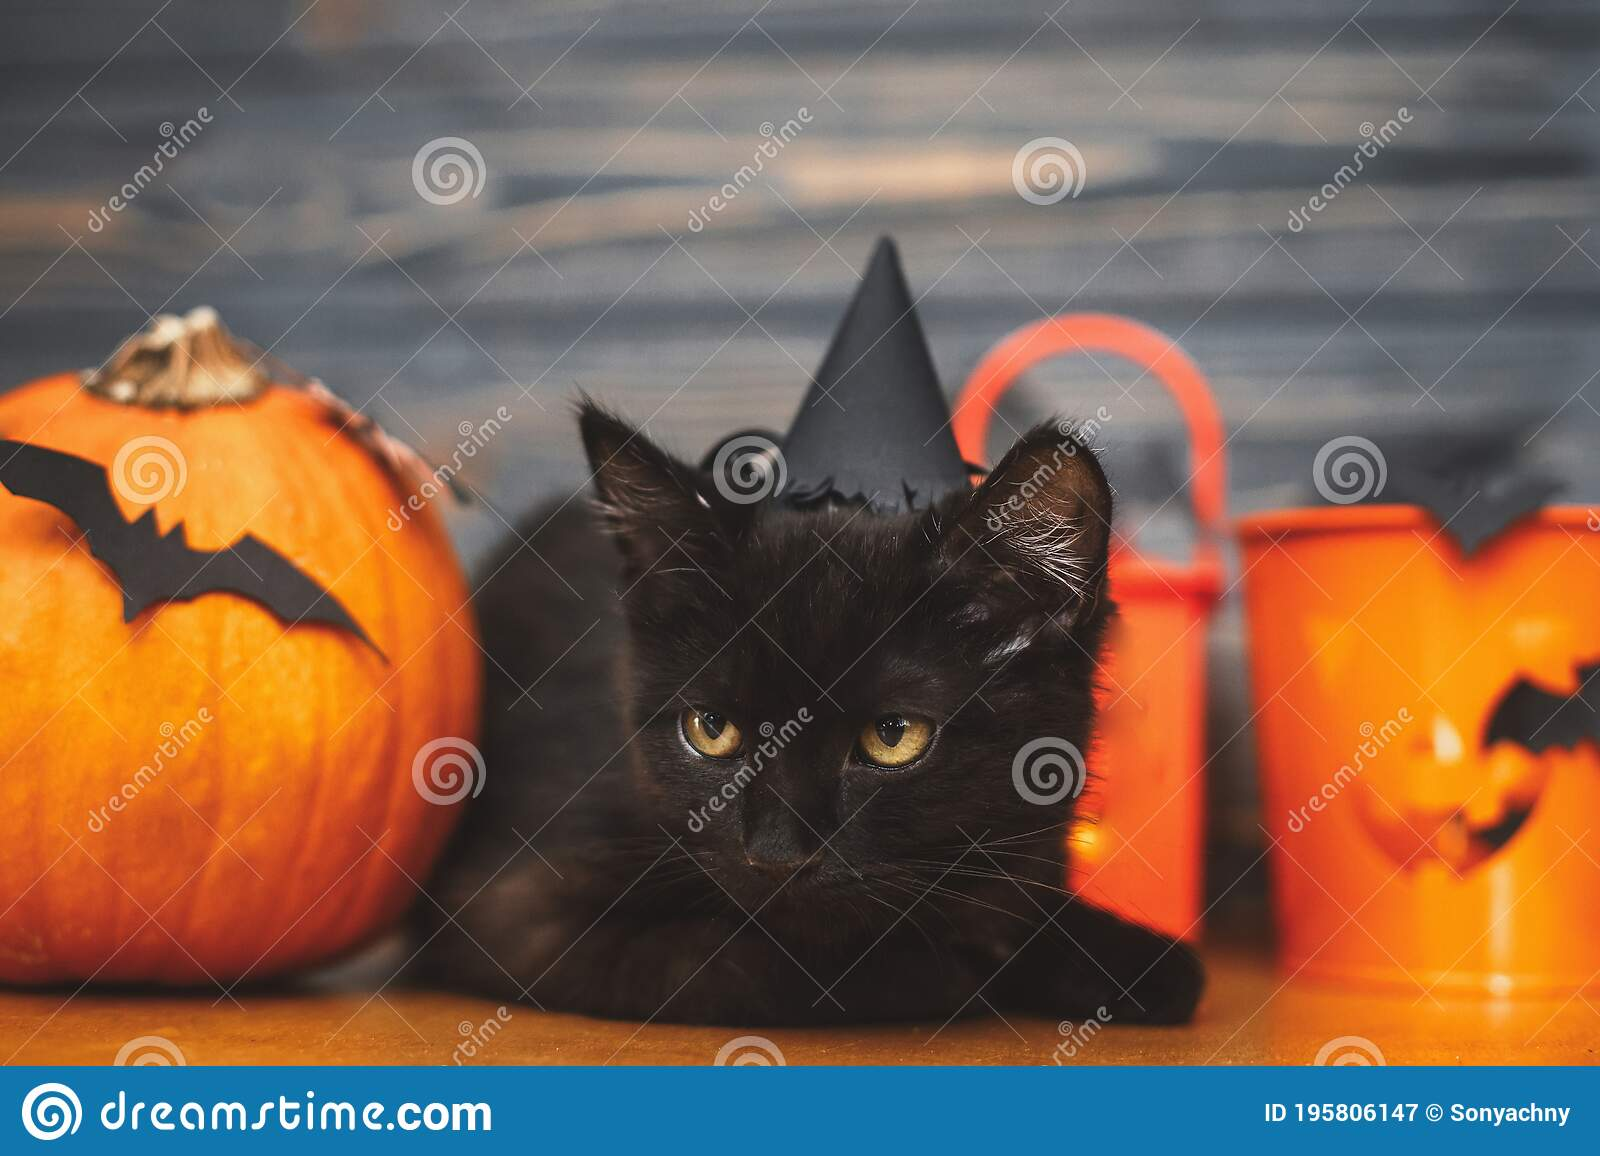 Black Scary Cat And Pumpkin Jack O Lantern Pail And Bats On Dark Wooden Background Happy Halloween Black Emotional Kitten Stock Image Image Of Animal Fall 195806147